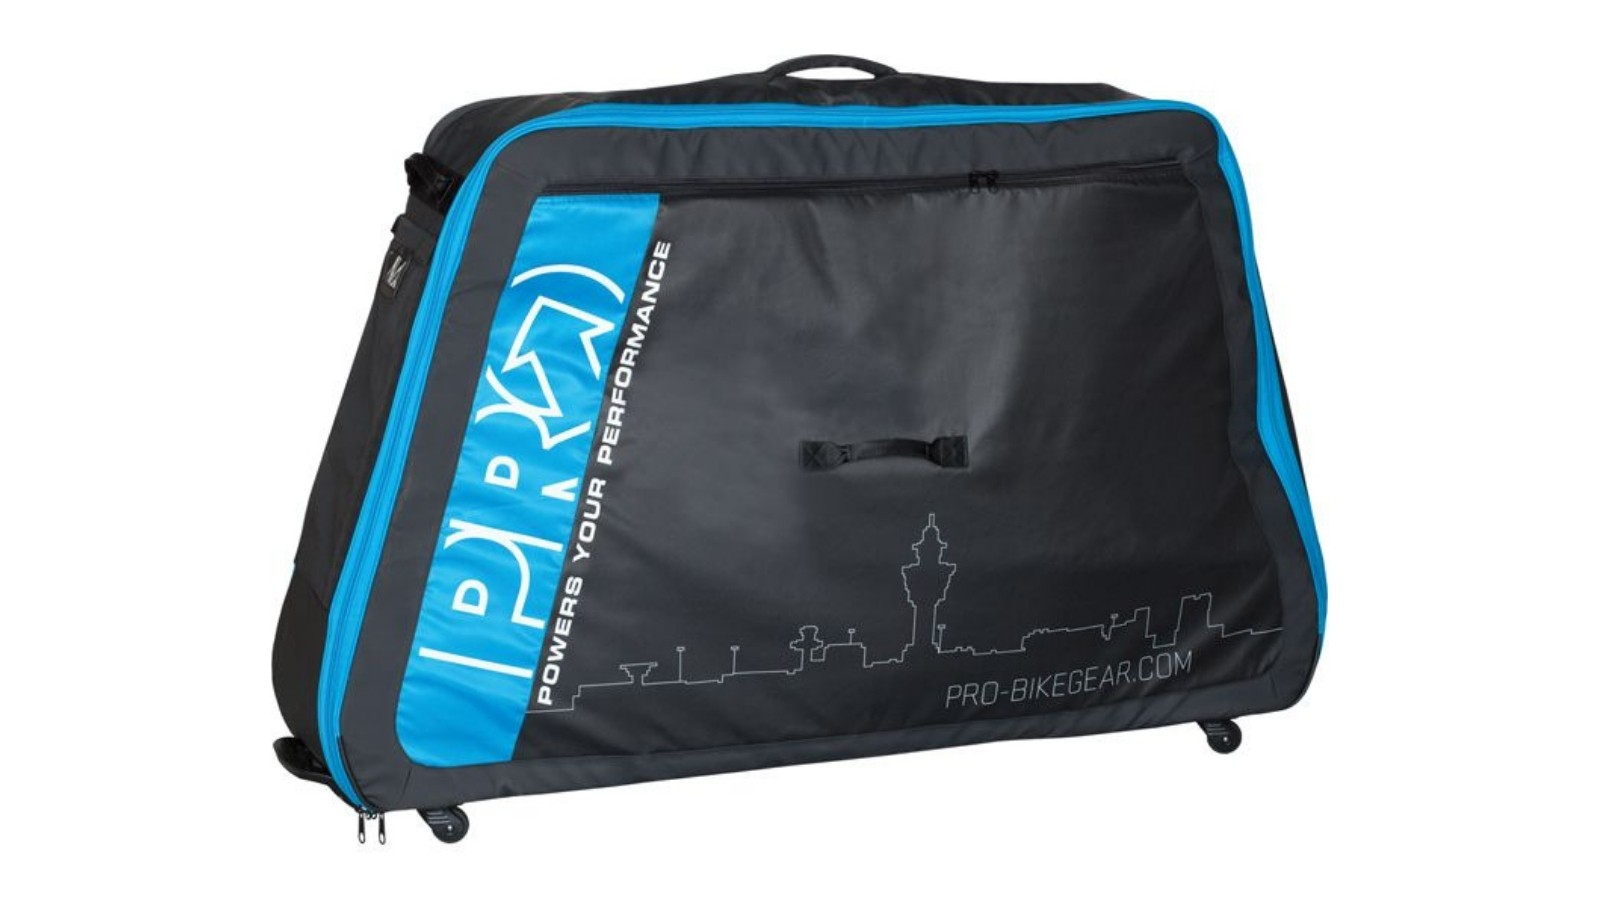 The Pro Travel Case Mega hits the sweet spot between low weight and protection